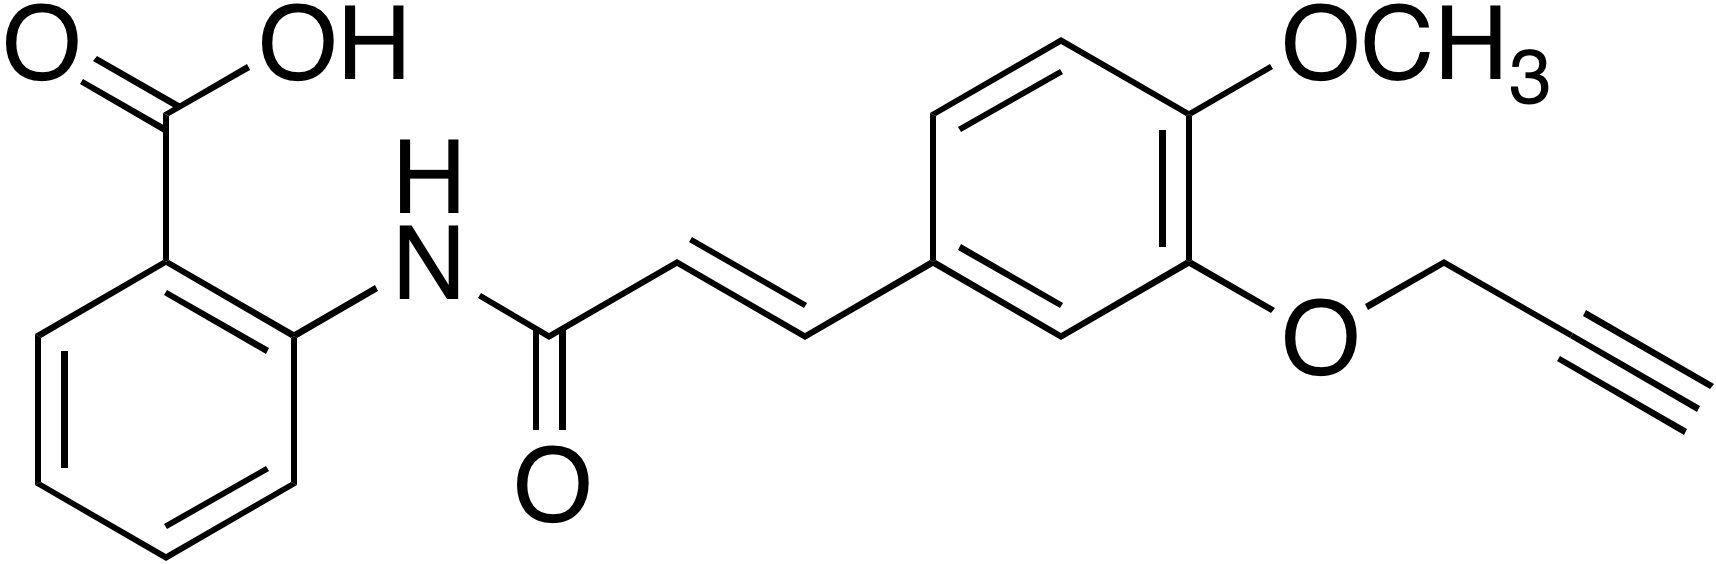 4-Methoxy-3-propargyloxycinnamoyl anthranilate